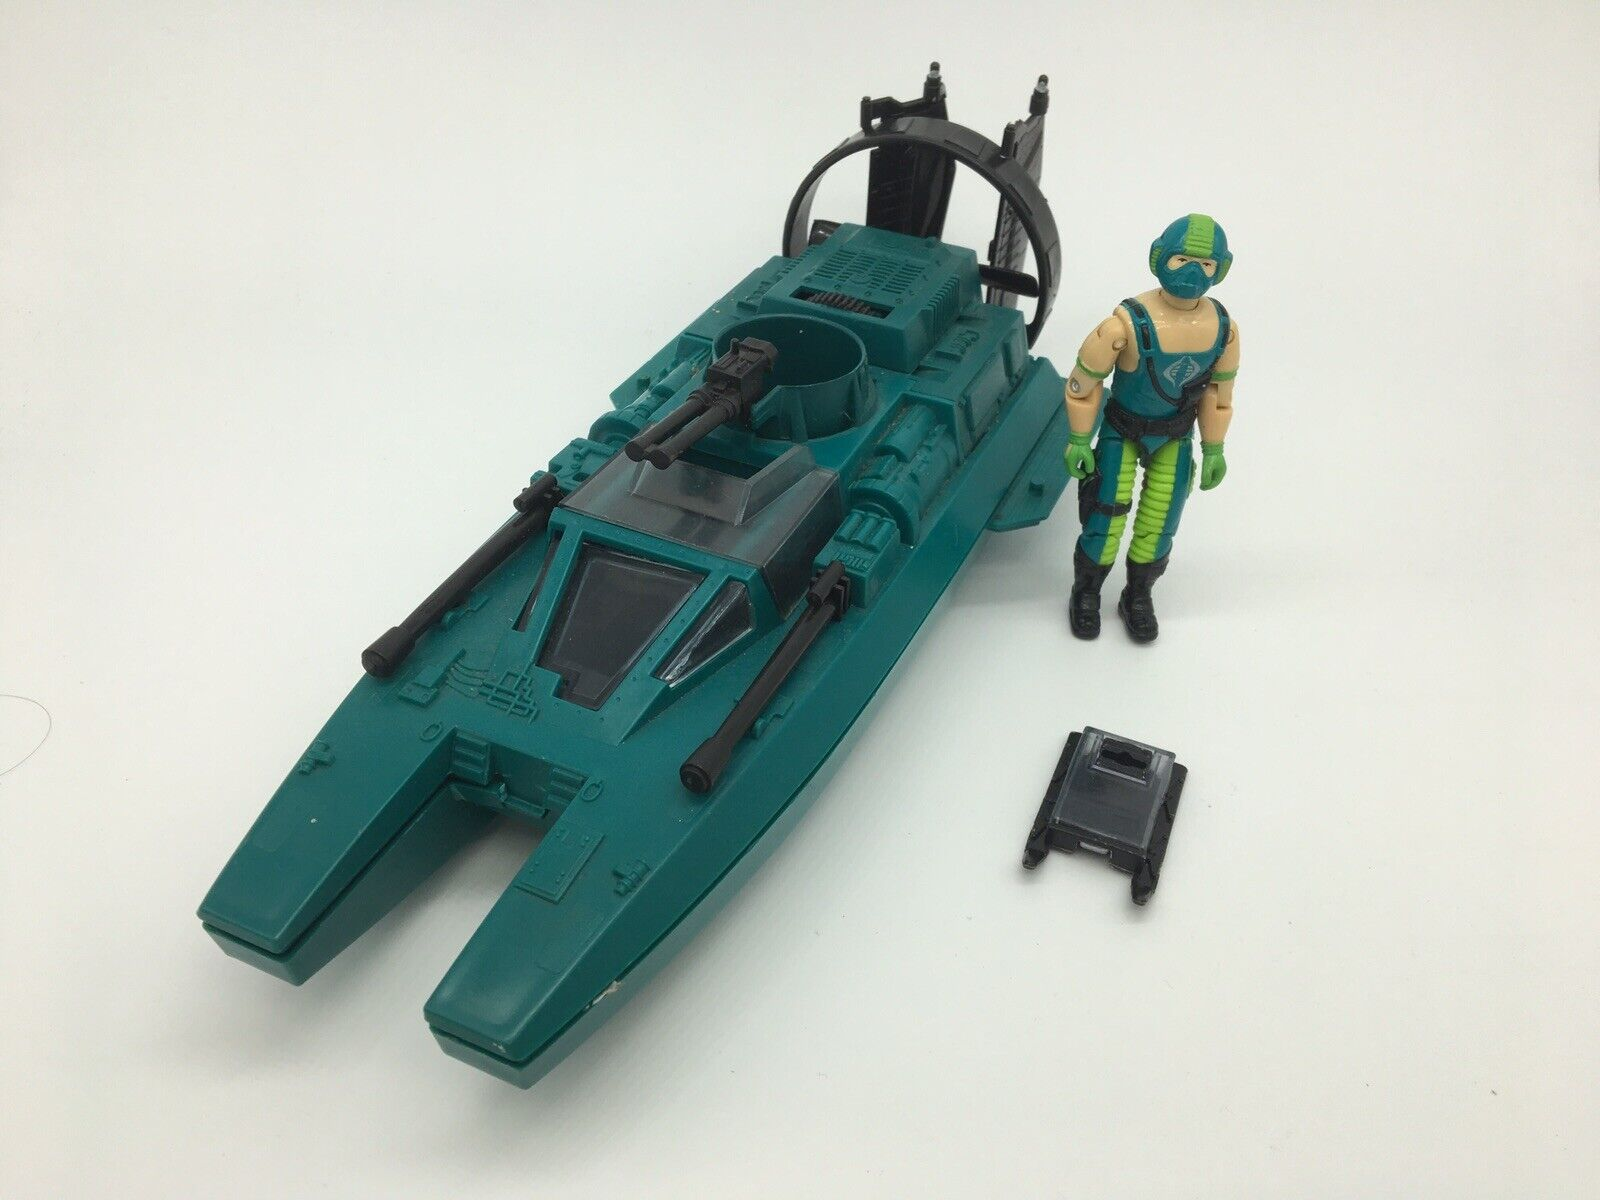 Action Force G I Joe Cobra Water Moccasin, COPPERHEAD, BOAT, 1980S, VINTAGE, TOY